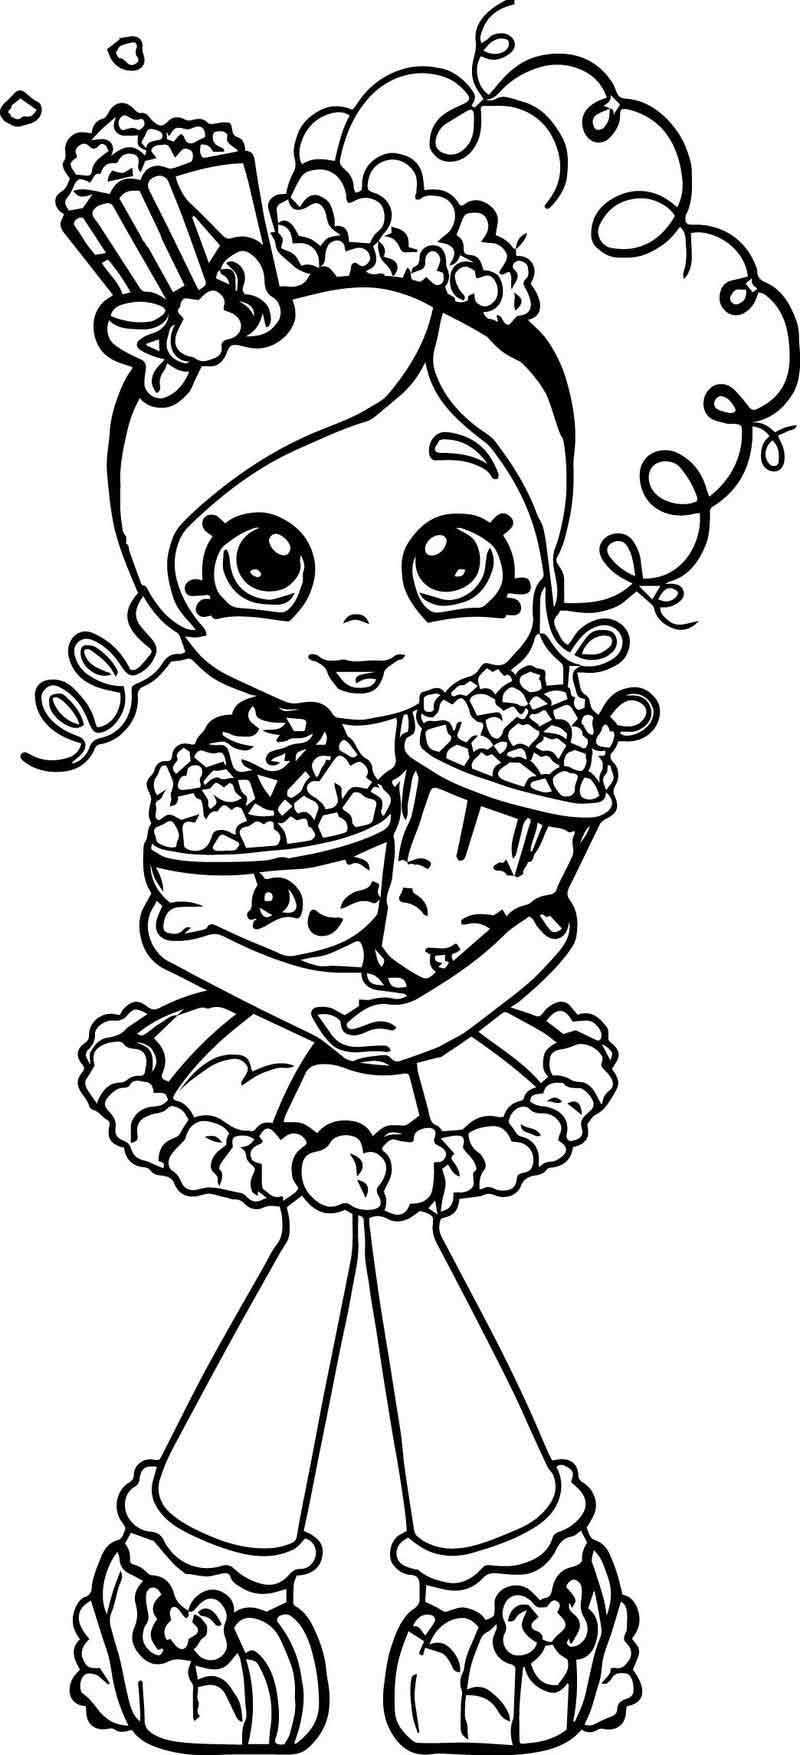 Popcorn Shopkins Girl Coloring Page Shopkins Colouring Pages Shopkin Coloring Pages Cartoon Coloring Pages